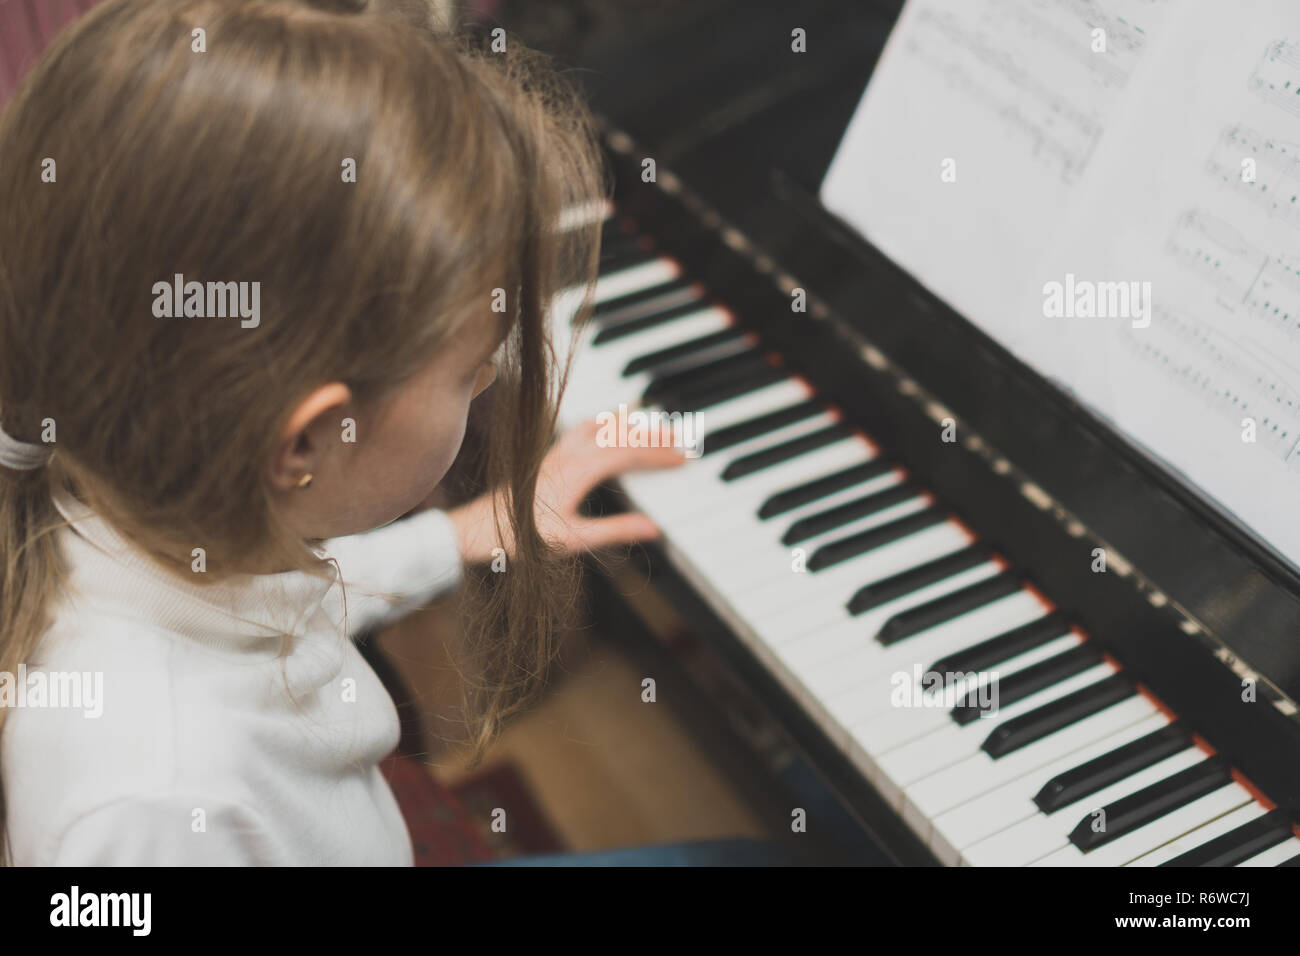 Little girl learning to play the piano. - Stock Image